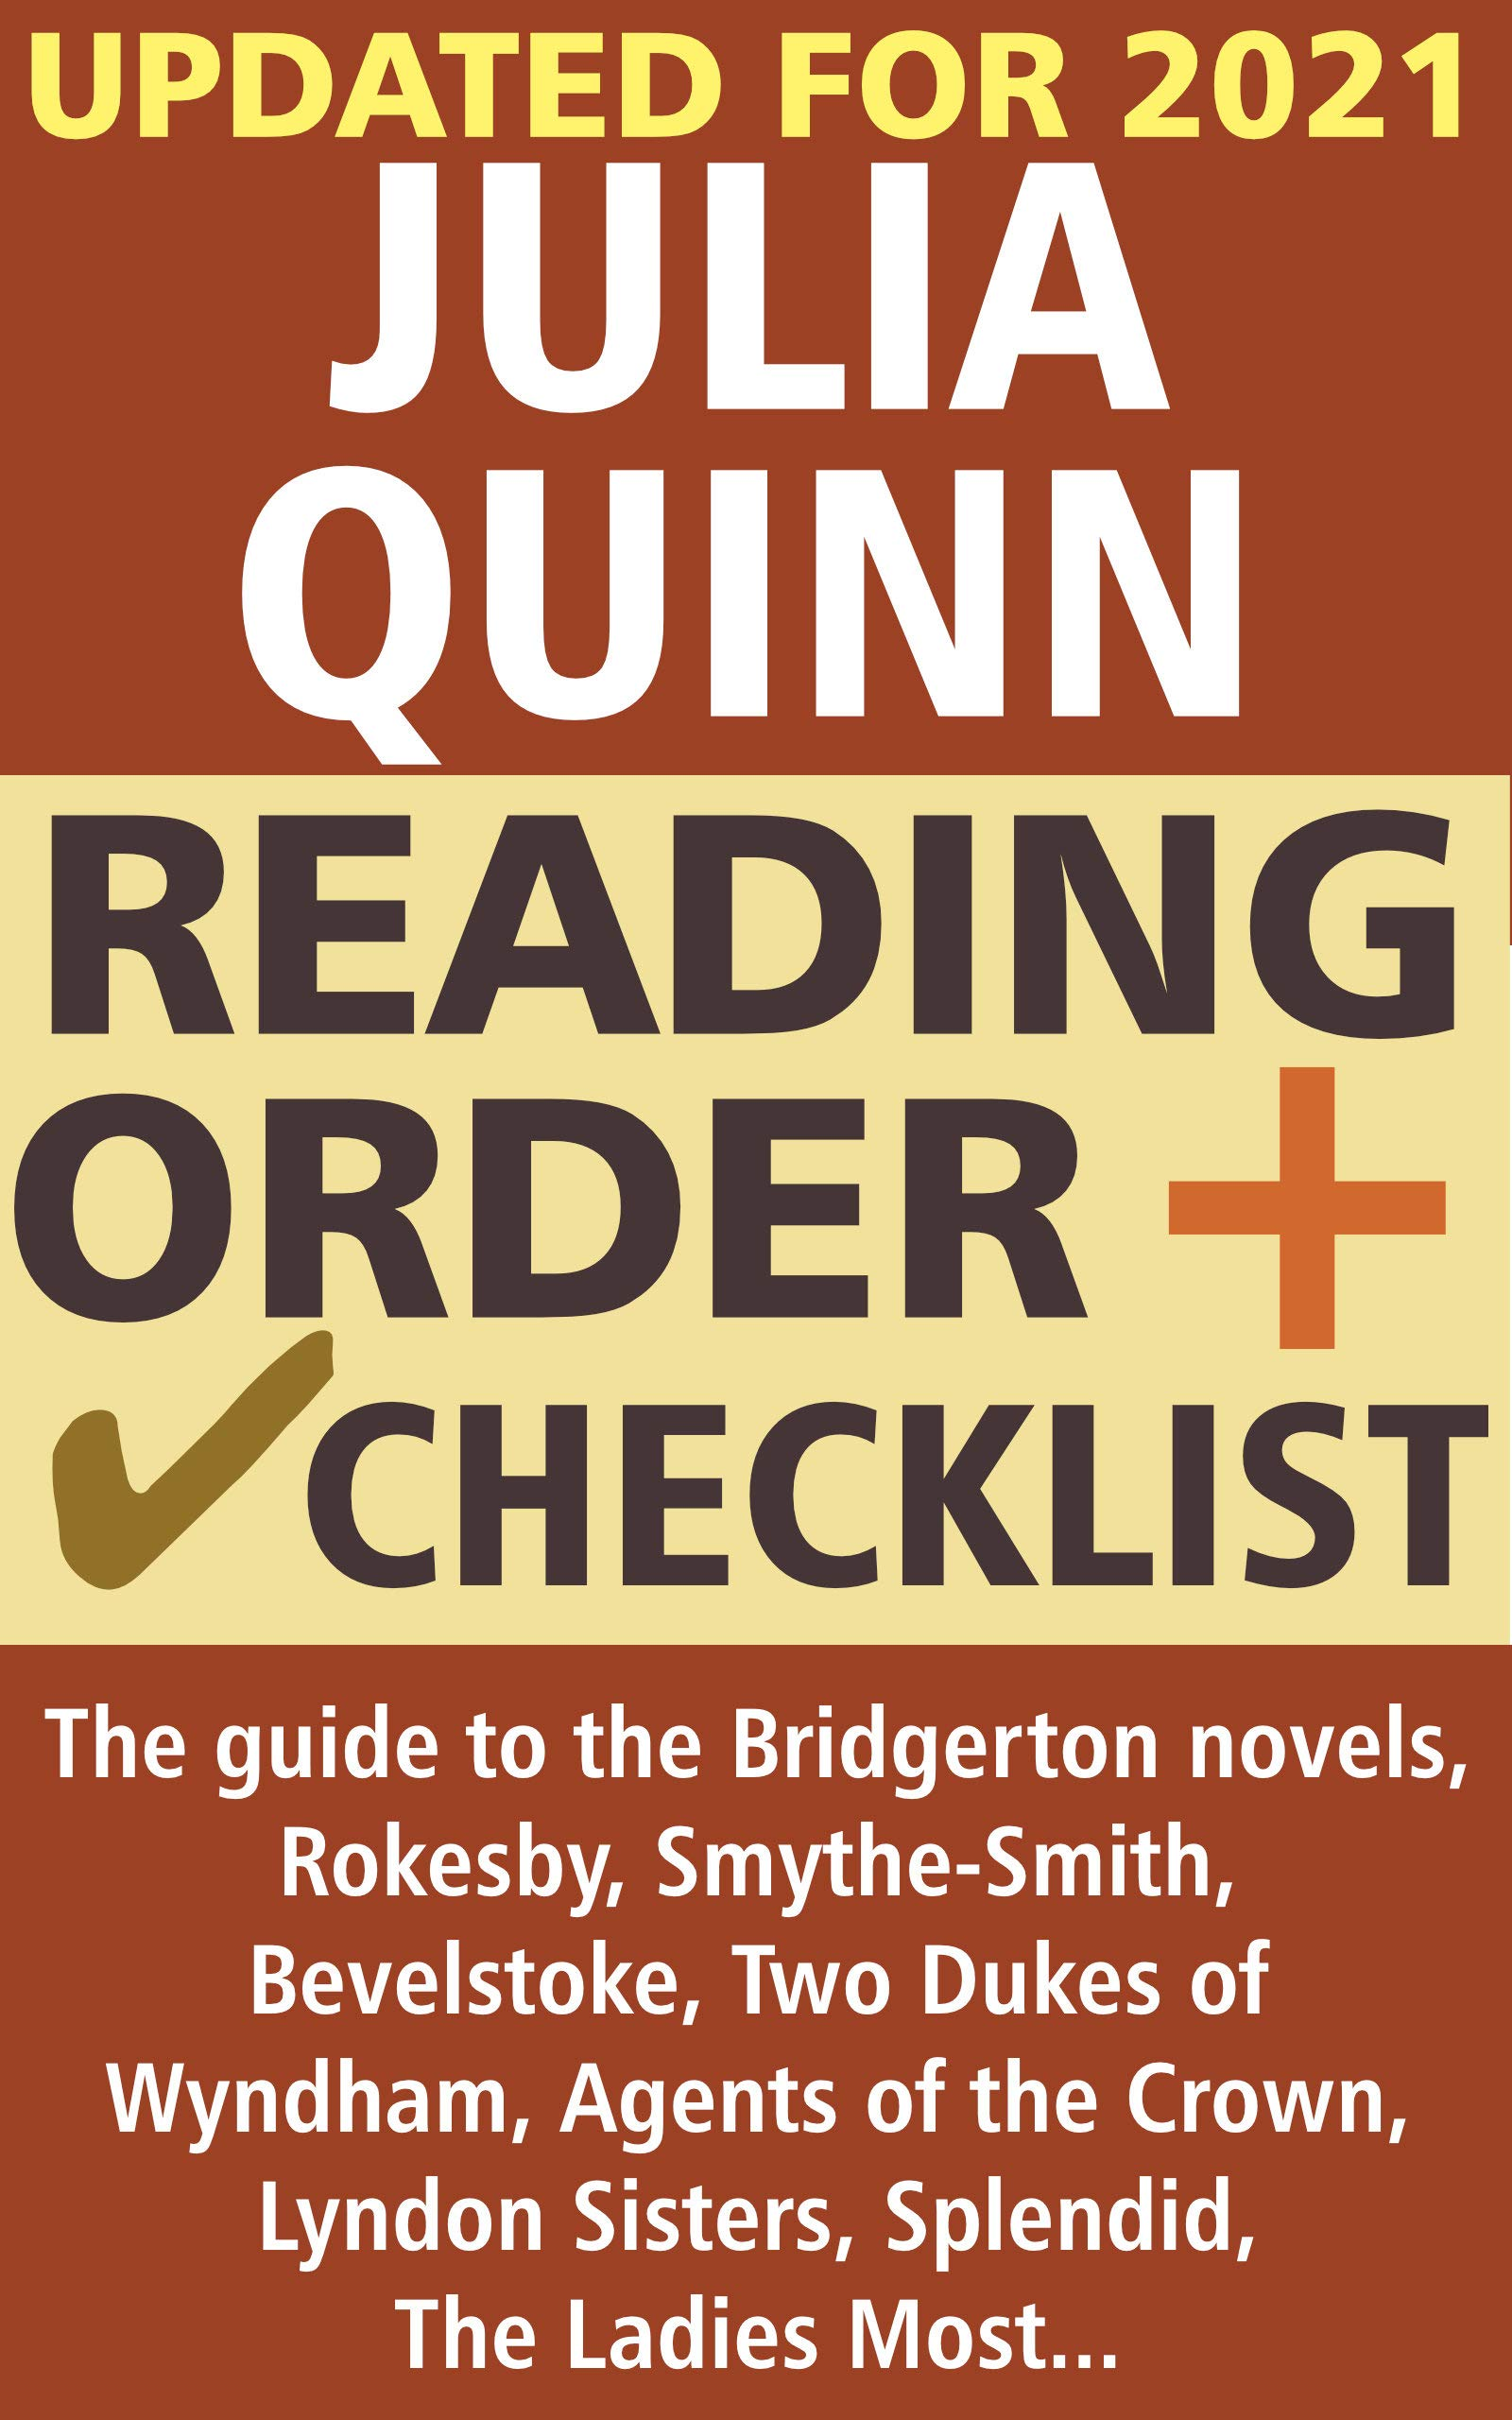 Julia Quinn Reading Order and Checklist: The guide to the Bridgerton novels, Rokesby, Smythe-Smith, Bevelstoke, Two Dukes of Wyndham, Agents of the Crown, Lyndon Sisters, Splendid, The Lady Most...